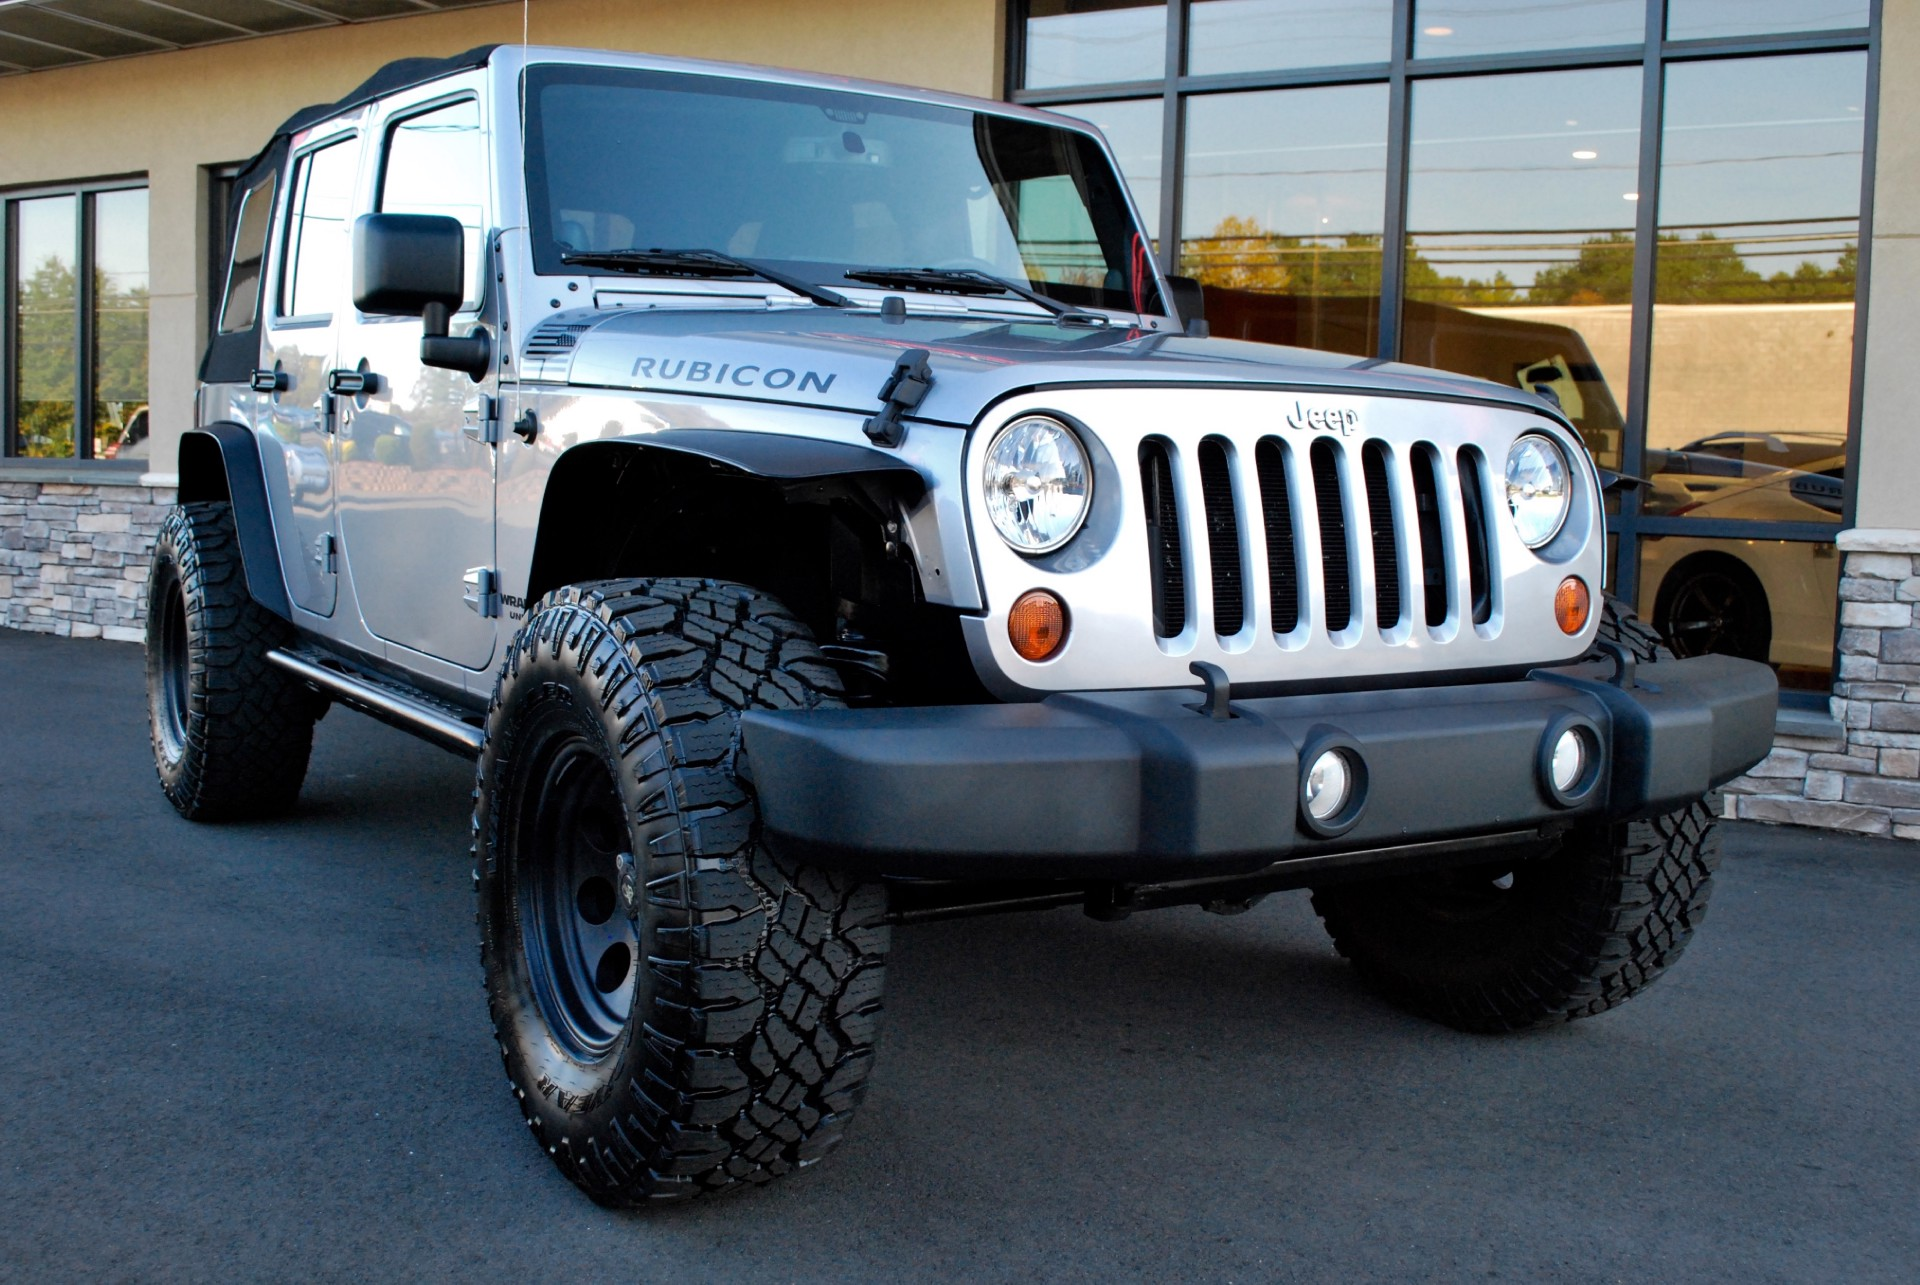 Save 6157 on a used Jeep Wrangler Search over 21100 listings to find the best Olathe KS deals We analyze millions of used cars daily